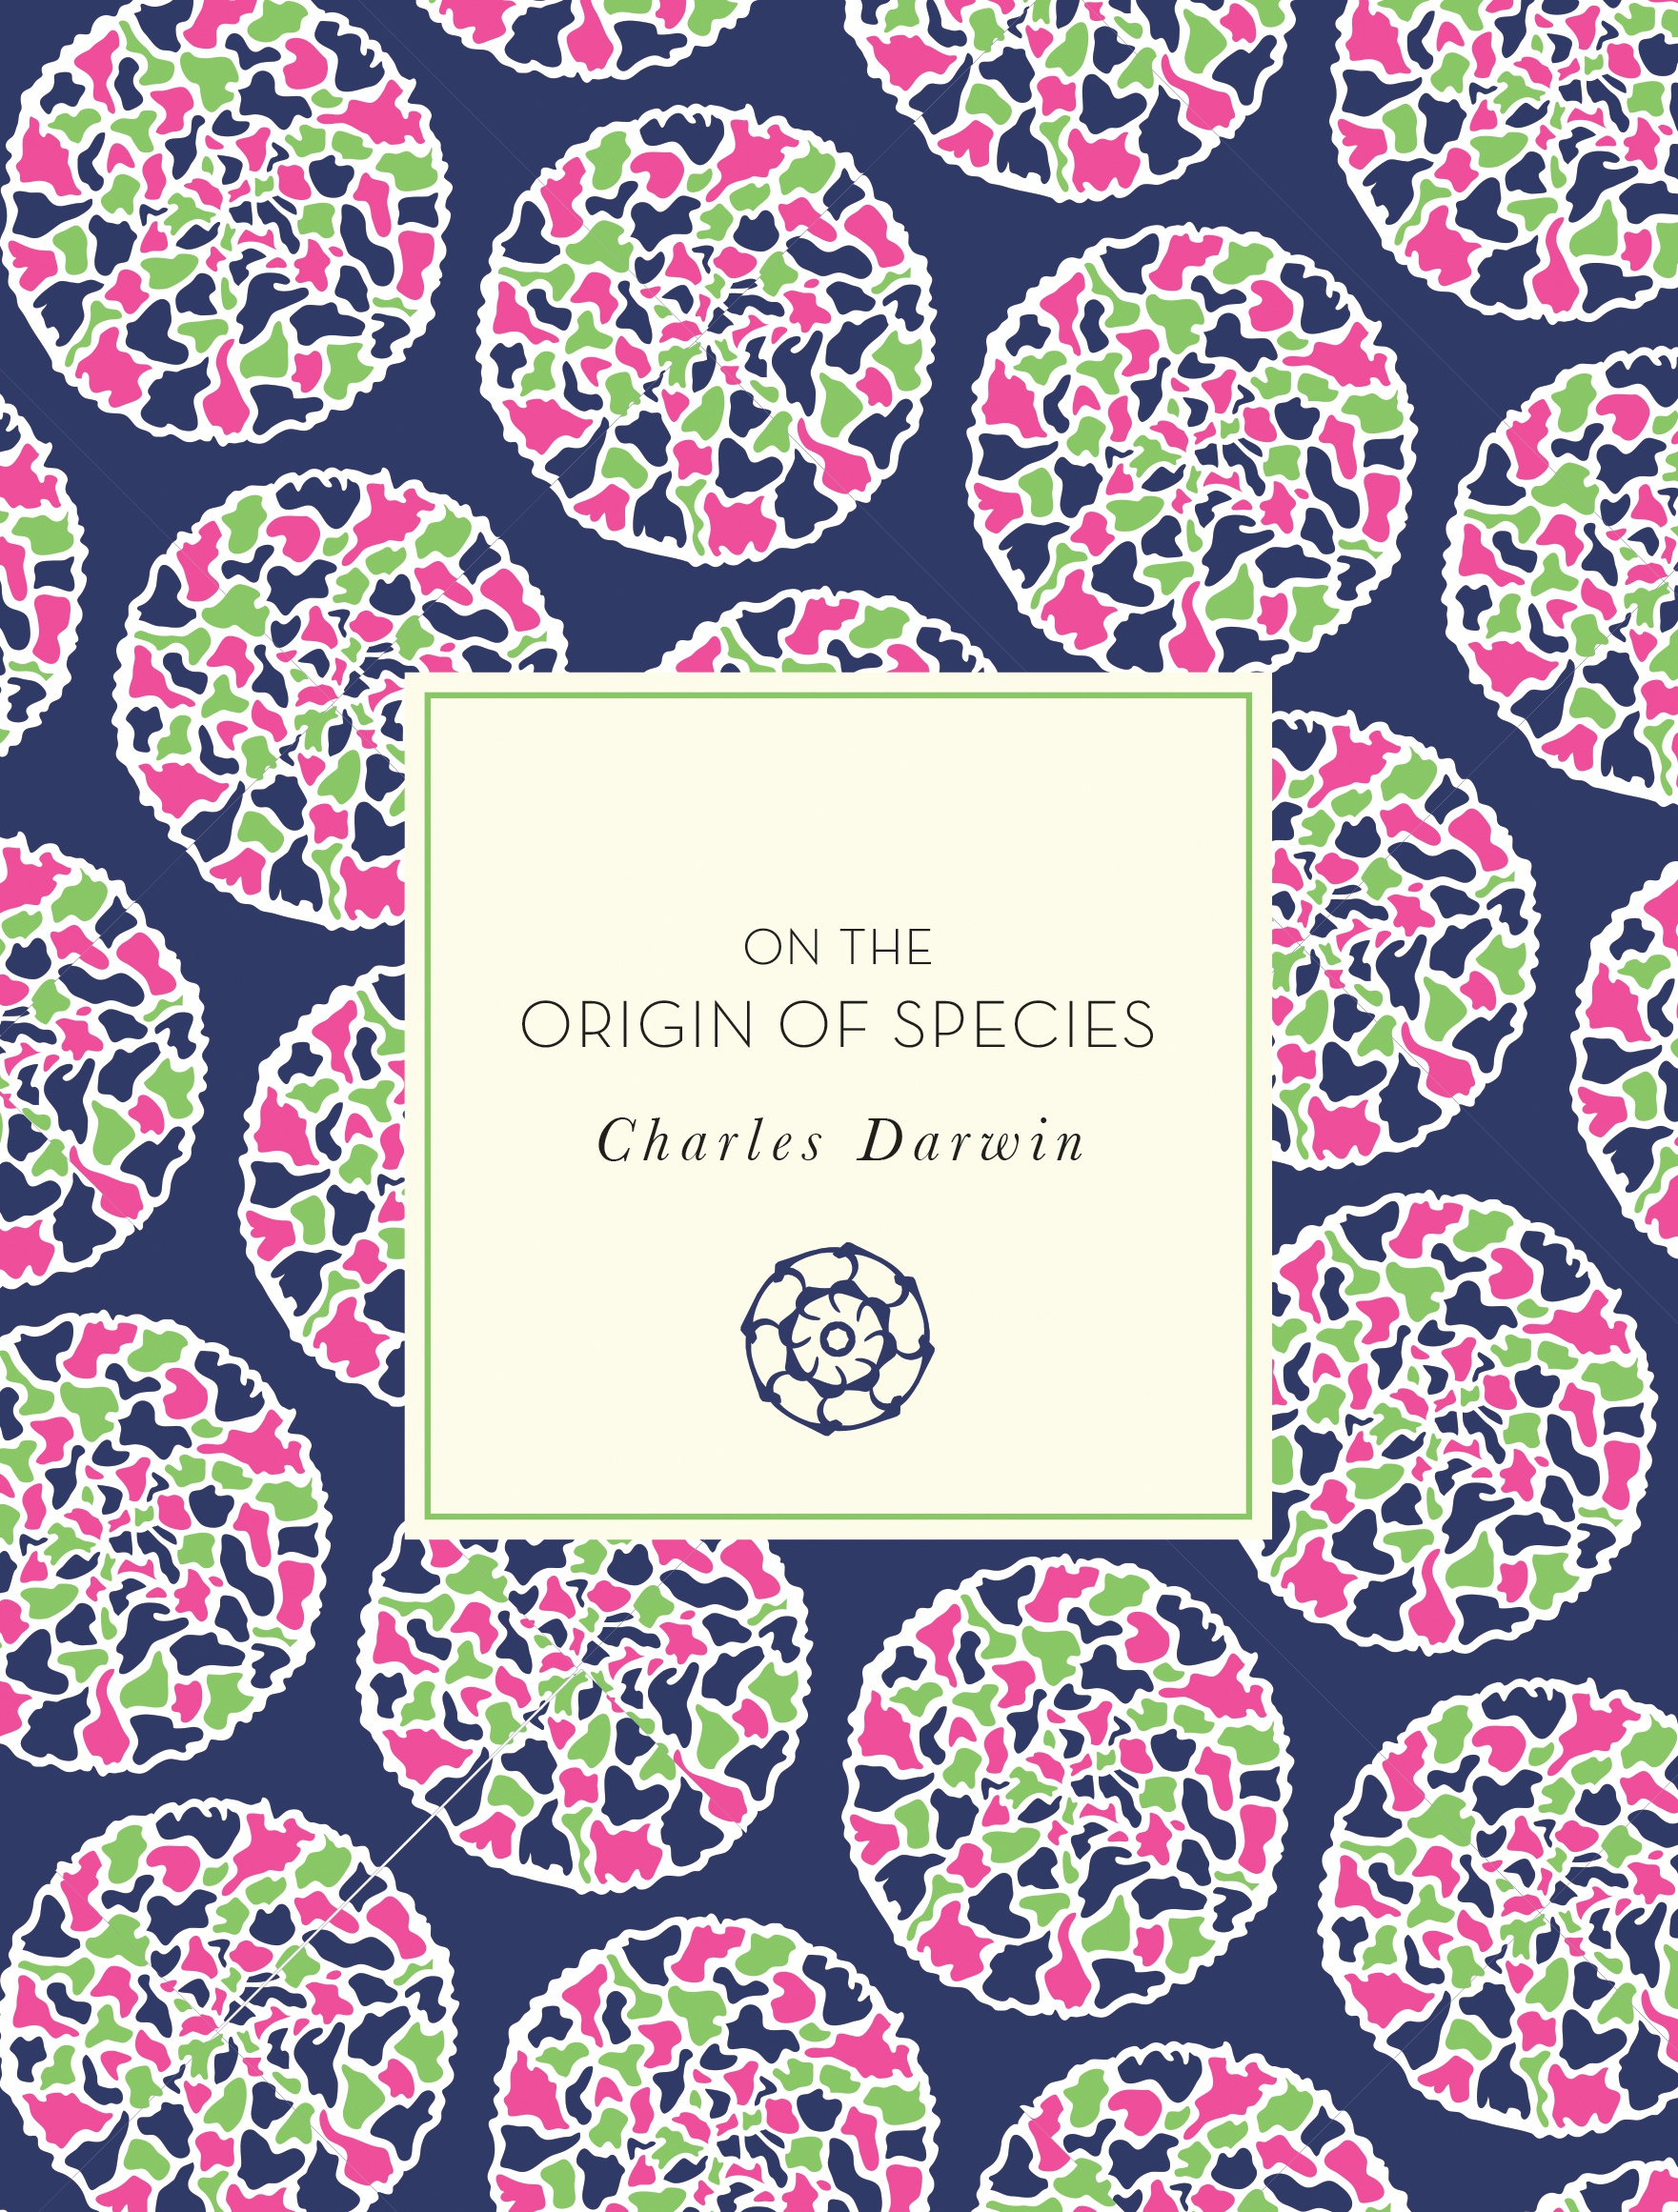 an introduction to the origin of species On the origin of species  this, certainly the most important biological book ever written, has received detailed bibliographical treatment in morse peckham's variorum edition, 1959.